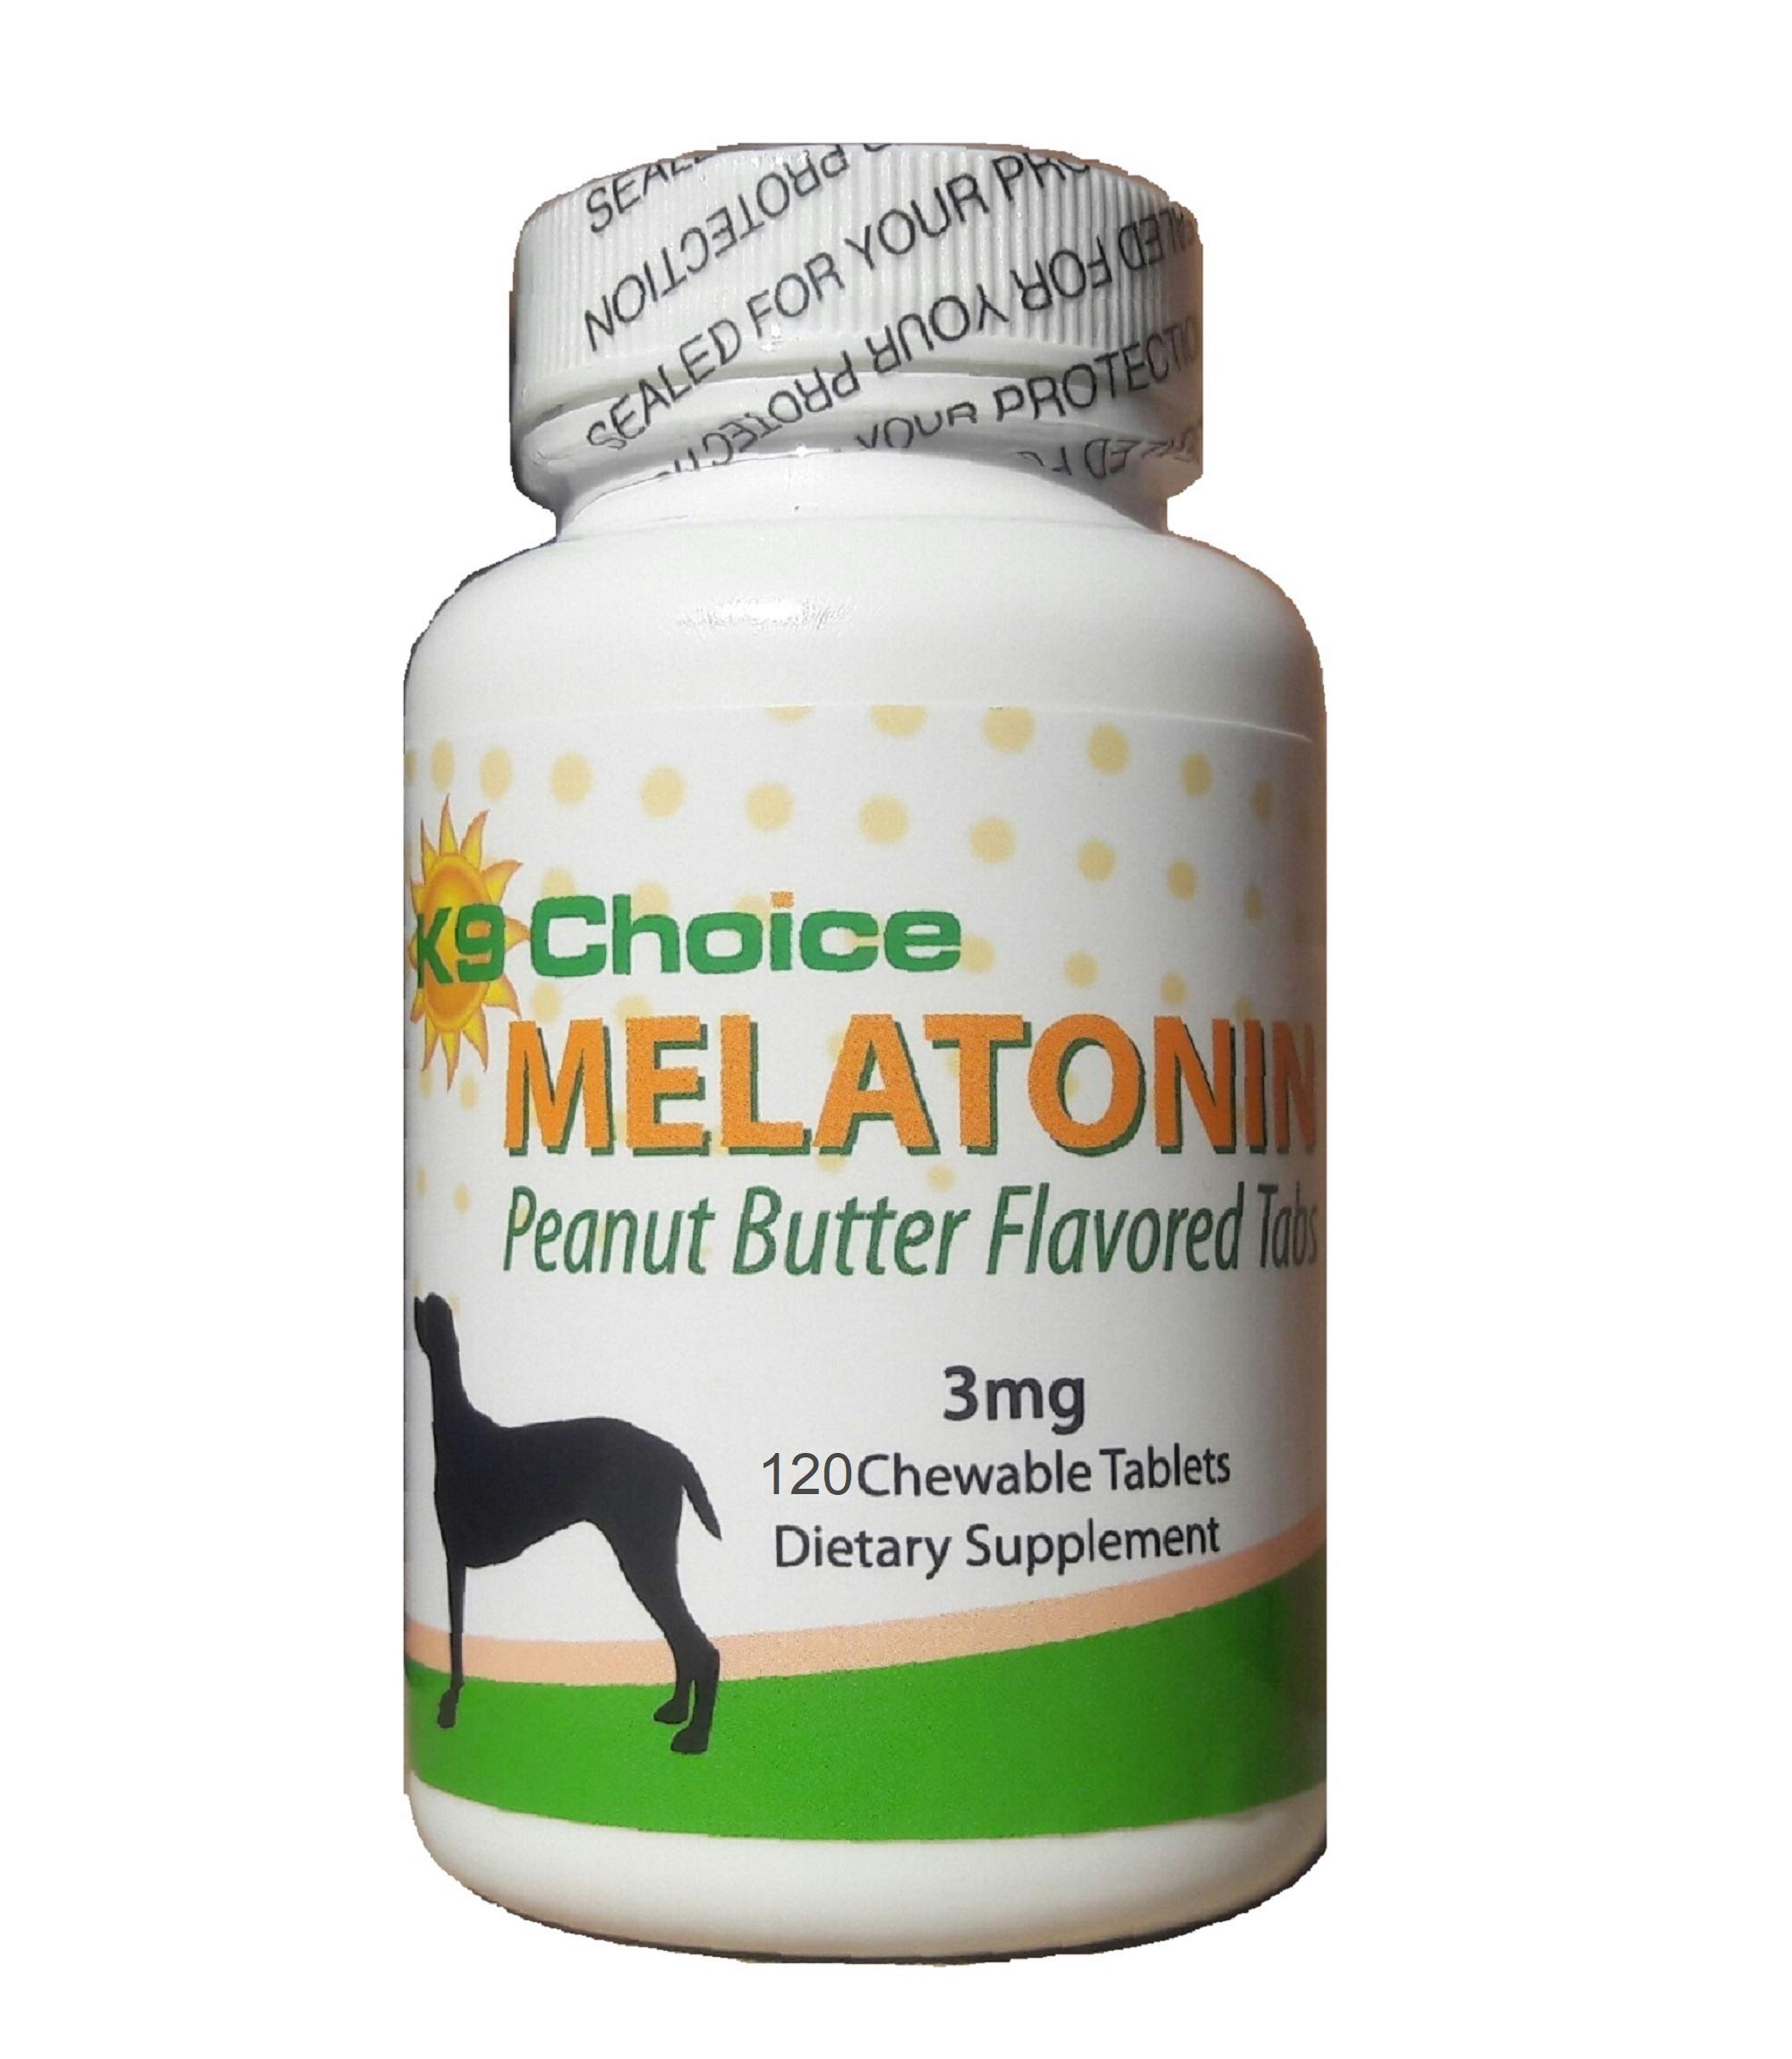 K9 Choice Melatonin for Dogs 3 mg Chewable Peanut Butter Flavor 120 Tabs by K9 Choice